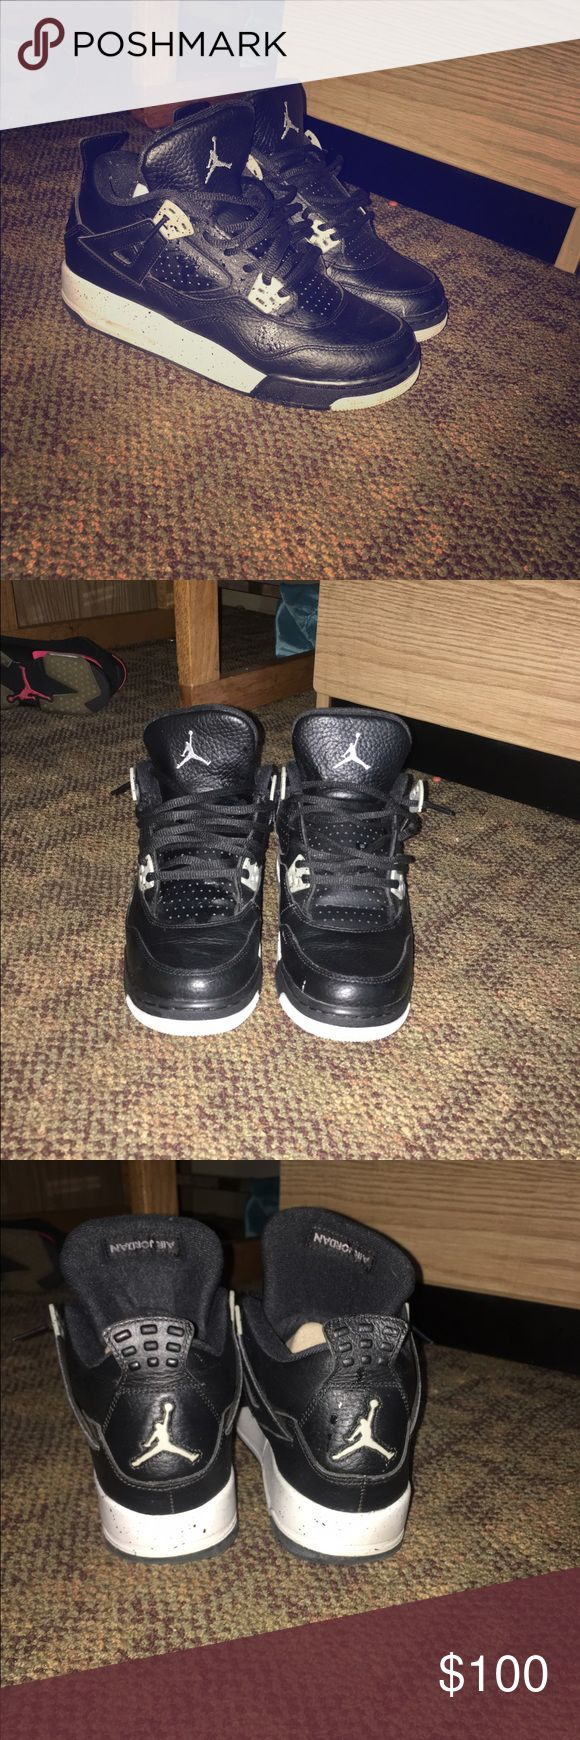 Retro 4's . (Oreo) Size 6.5y. 100 or B/O . Only worn a couple times . Condition 8/10 due to minor creasing Jordan Shoes Sneakers